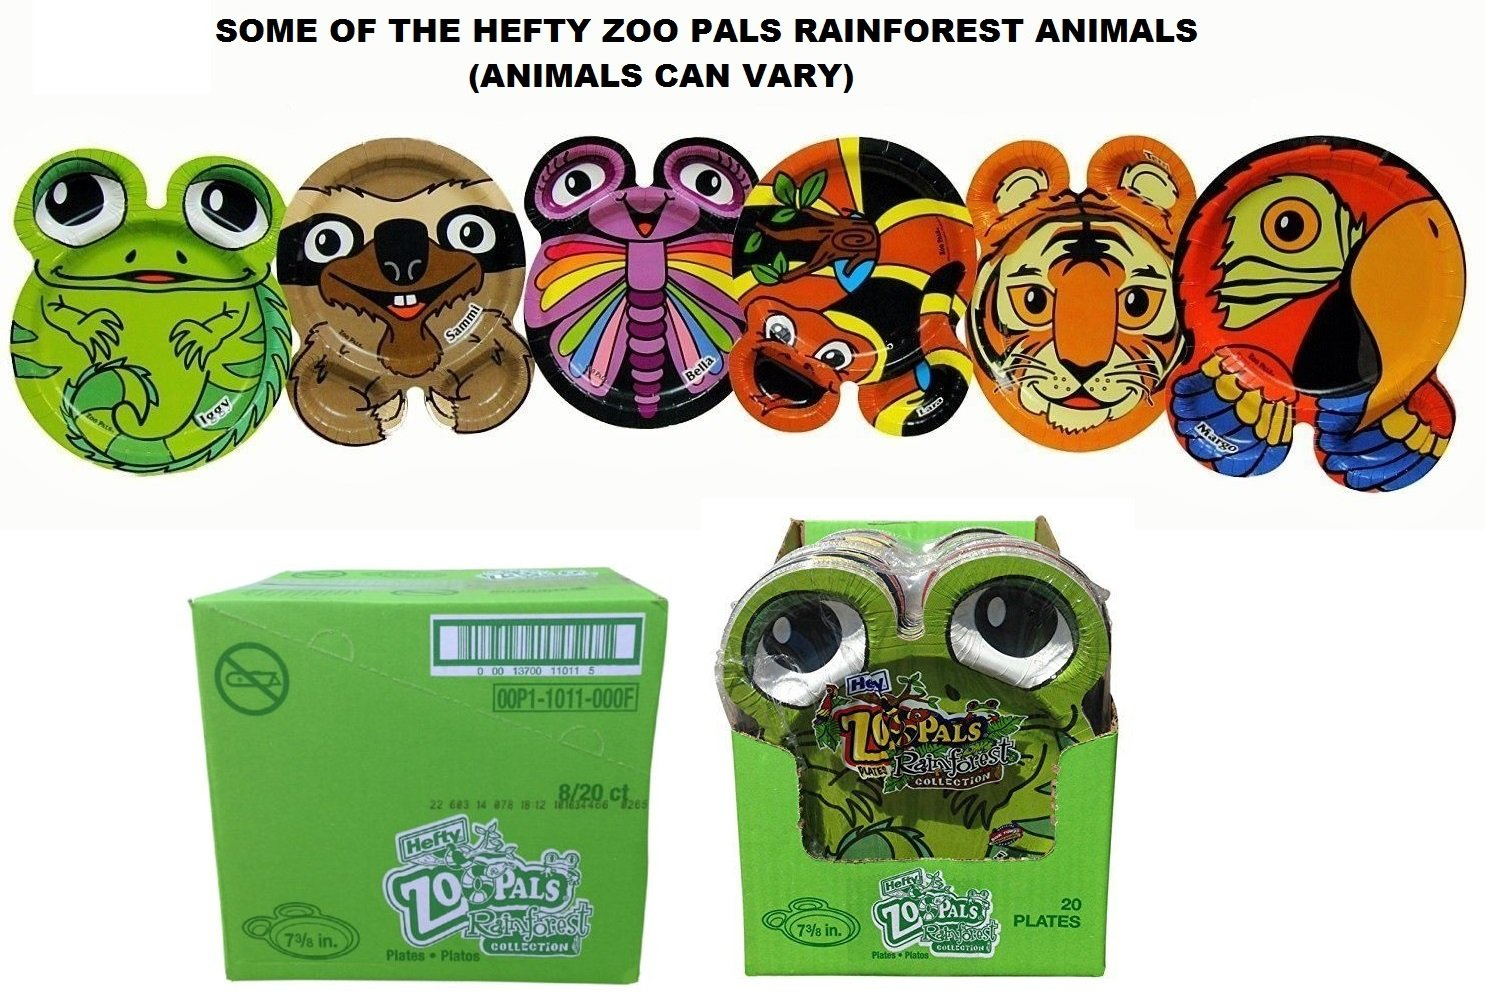 Hefty Zoo Pals Rainforest Paper Plates-20 ct, 7.375 inch (Case of 8) =160 Plates (Discontinued by Manufacturer)-Animals Can Vary by Hefty